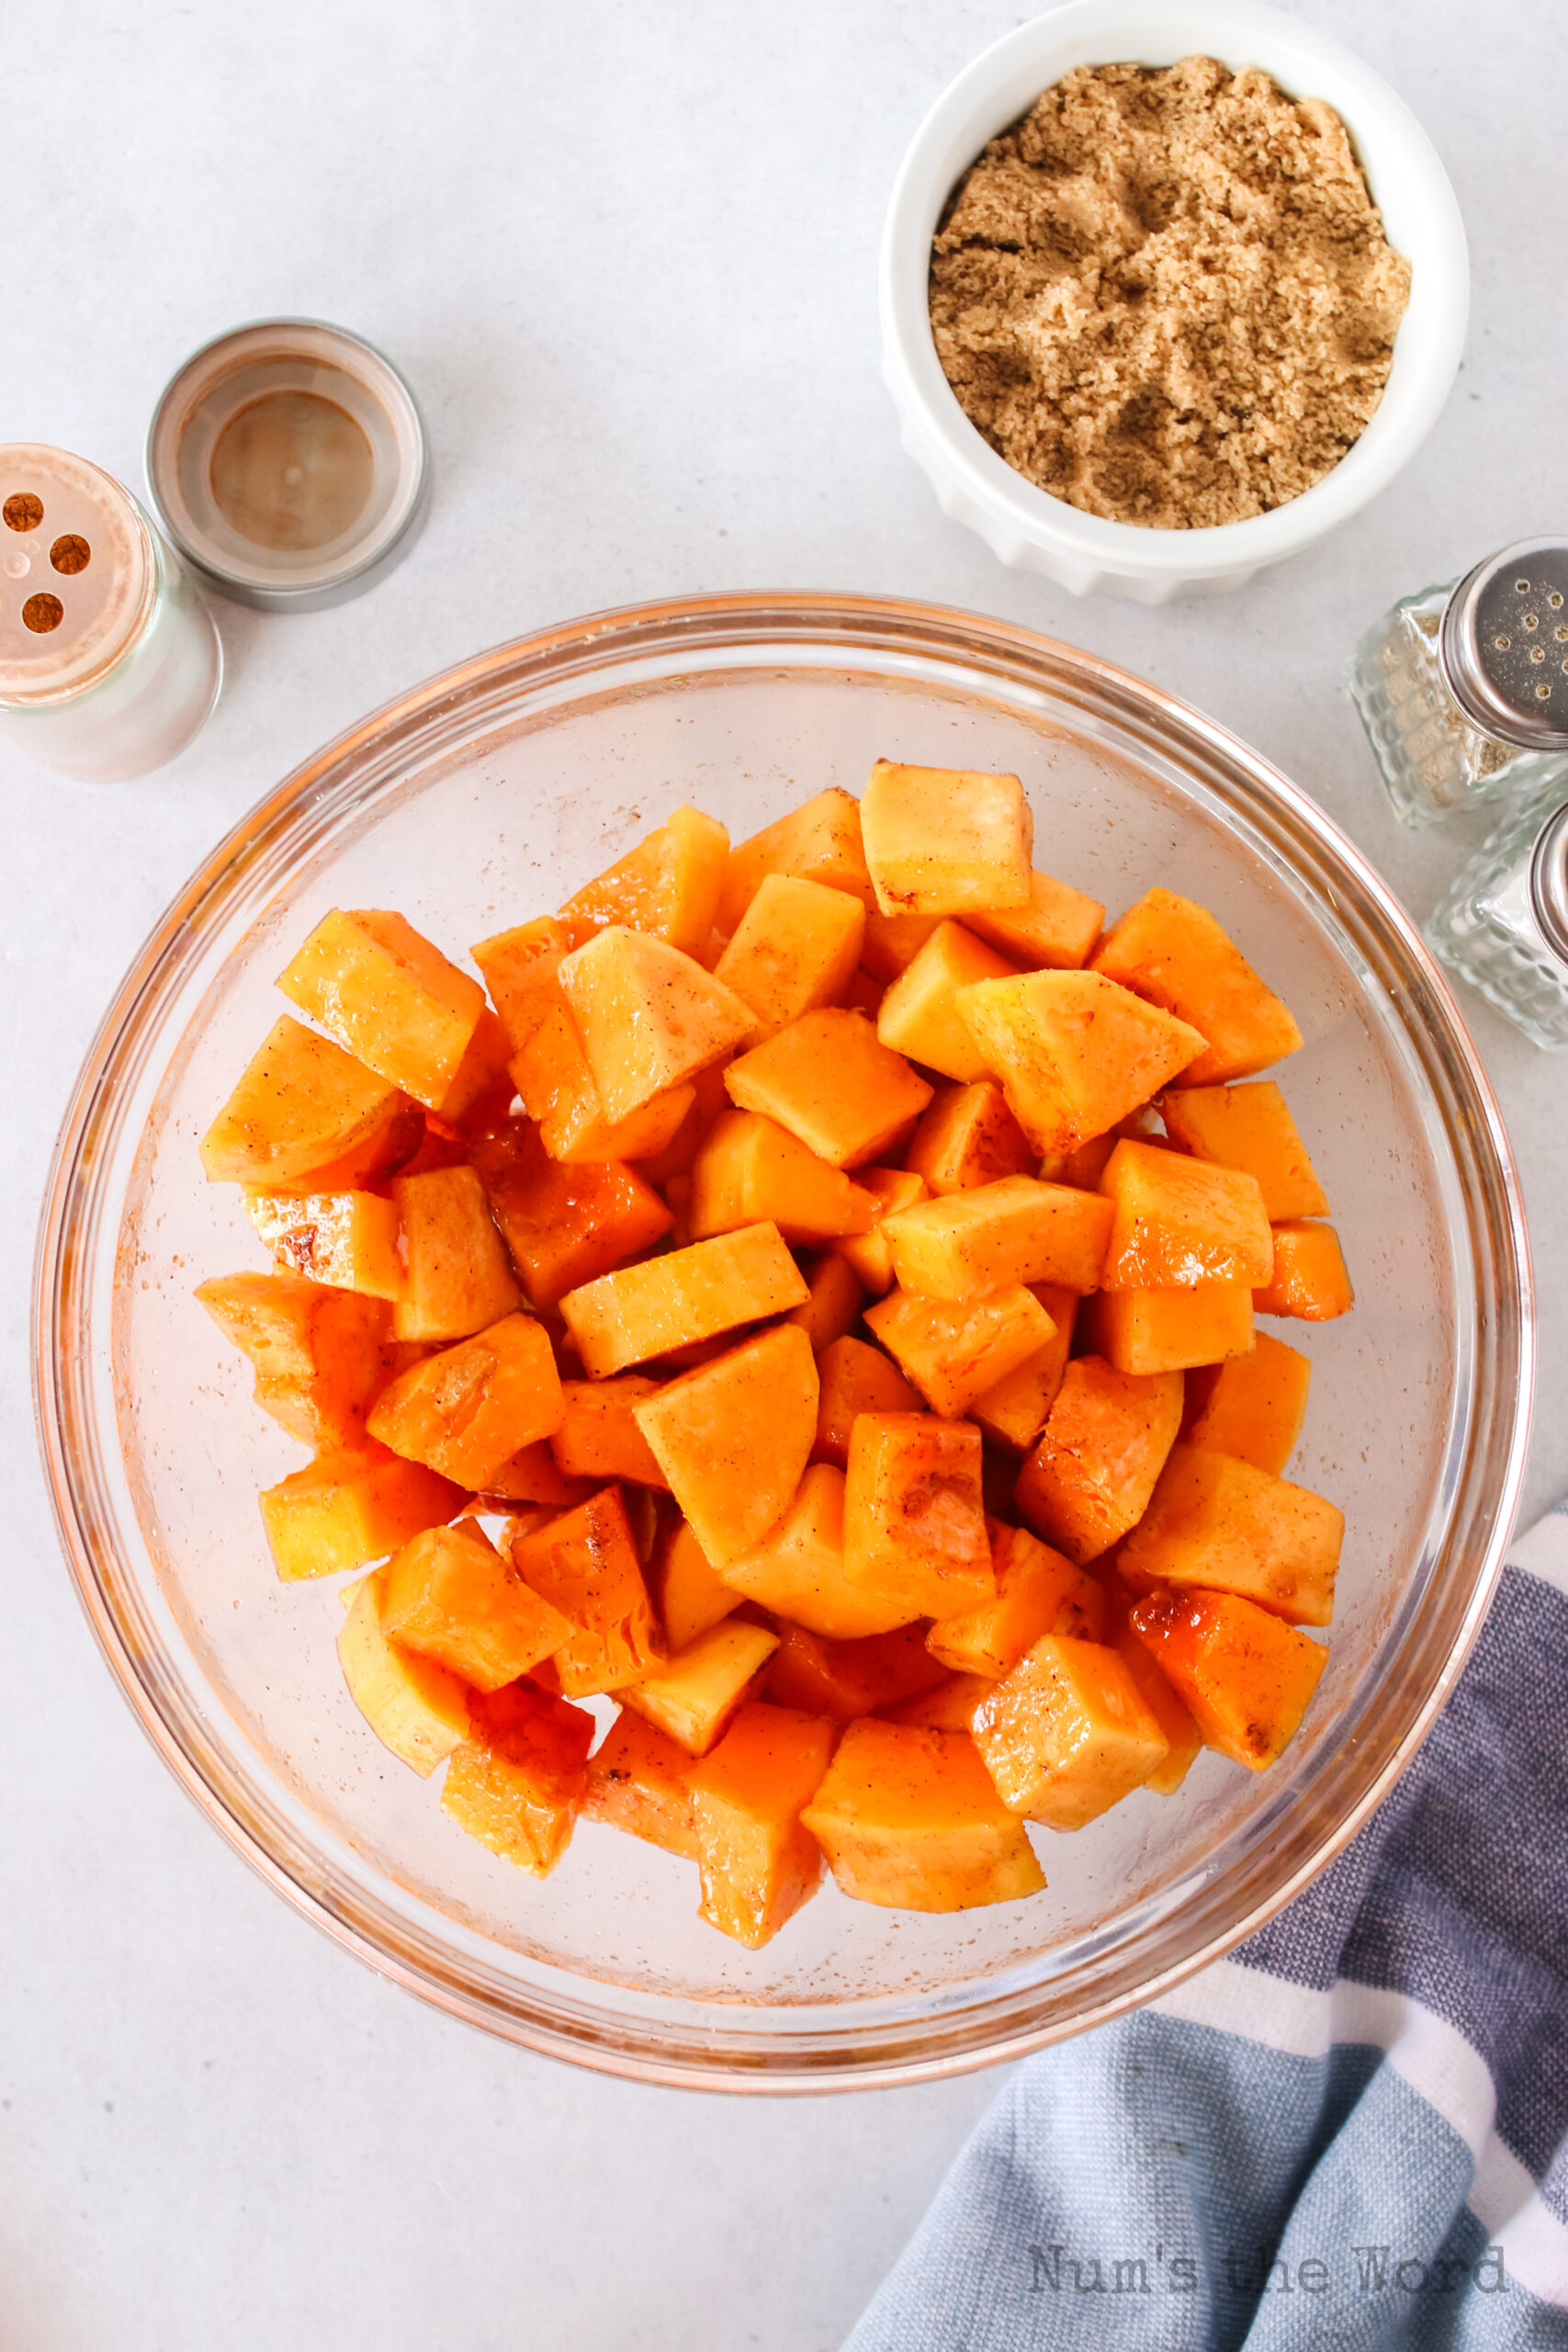 peeled and cut squash in a bowl with oil and seasoning.